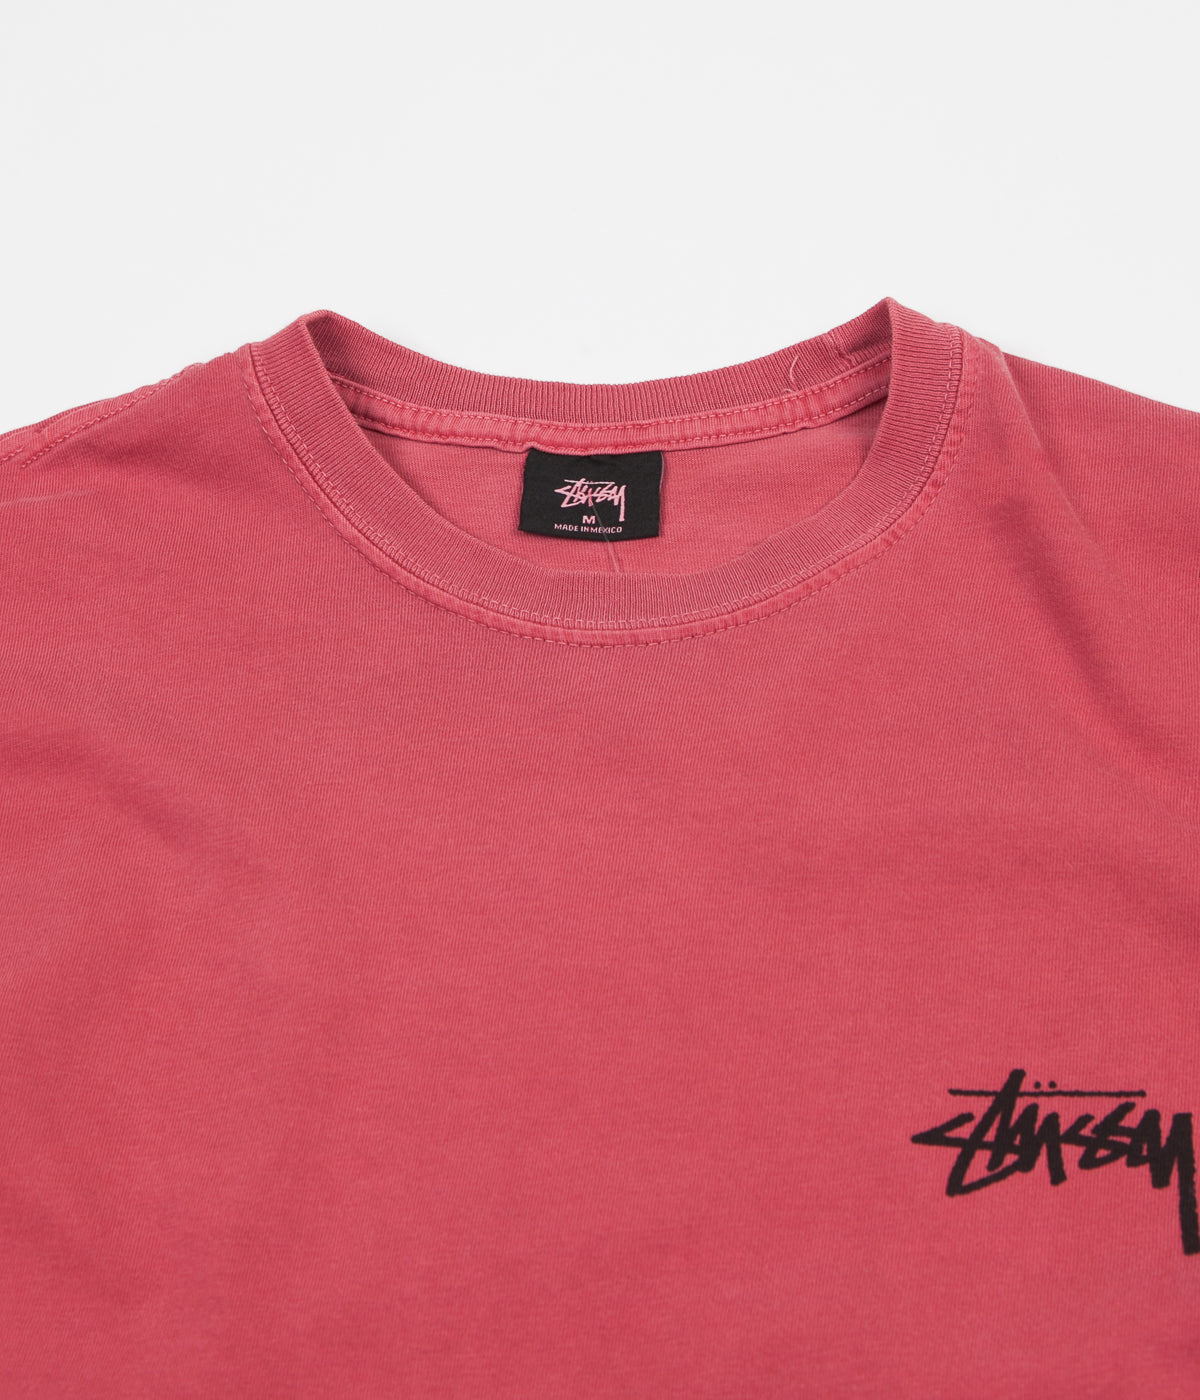 Stussy 8 Ball Pigment Dyed T-Shirt - Raspberry